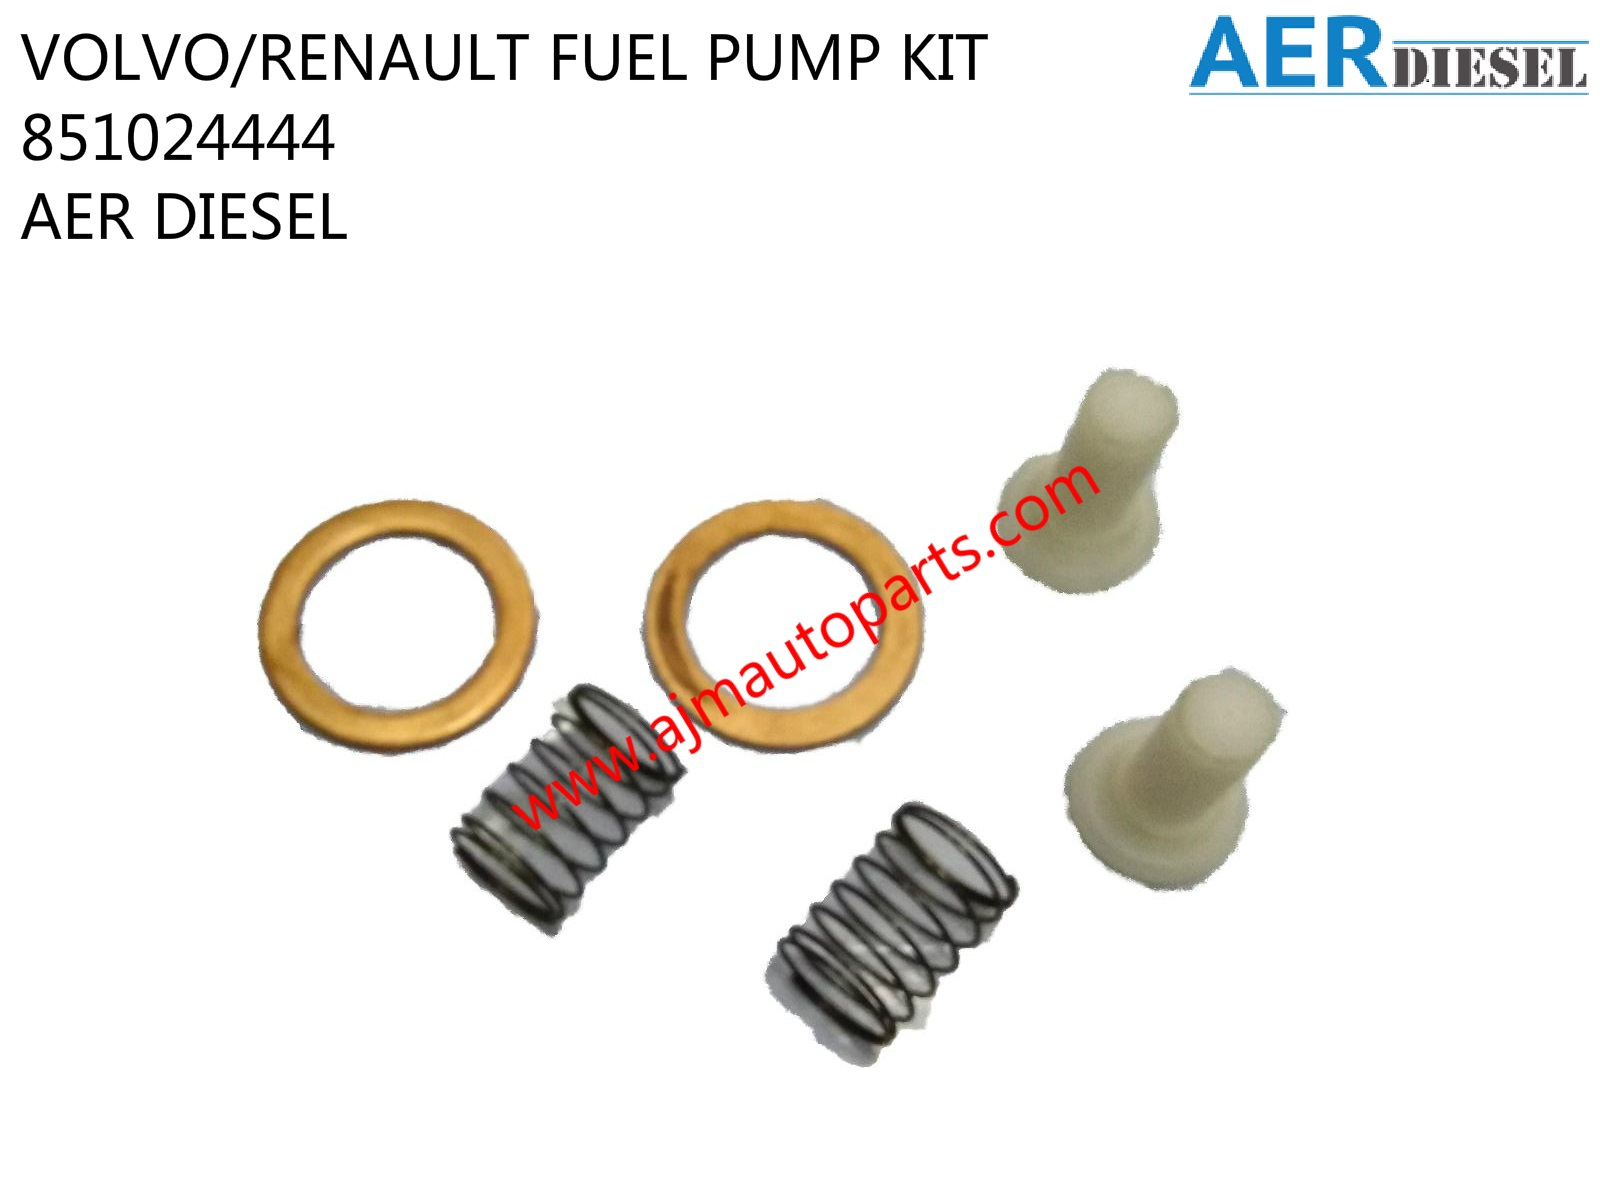 VOLVO-RENAULT FUEL PUMP KIT-851024444